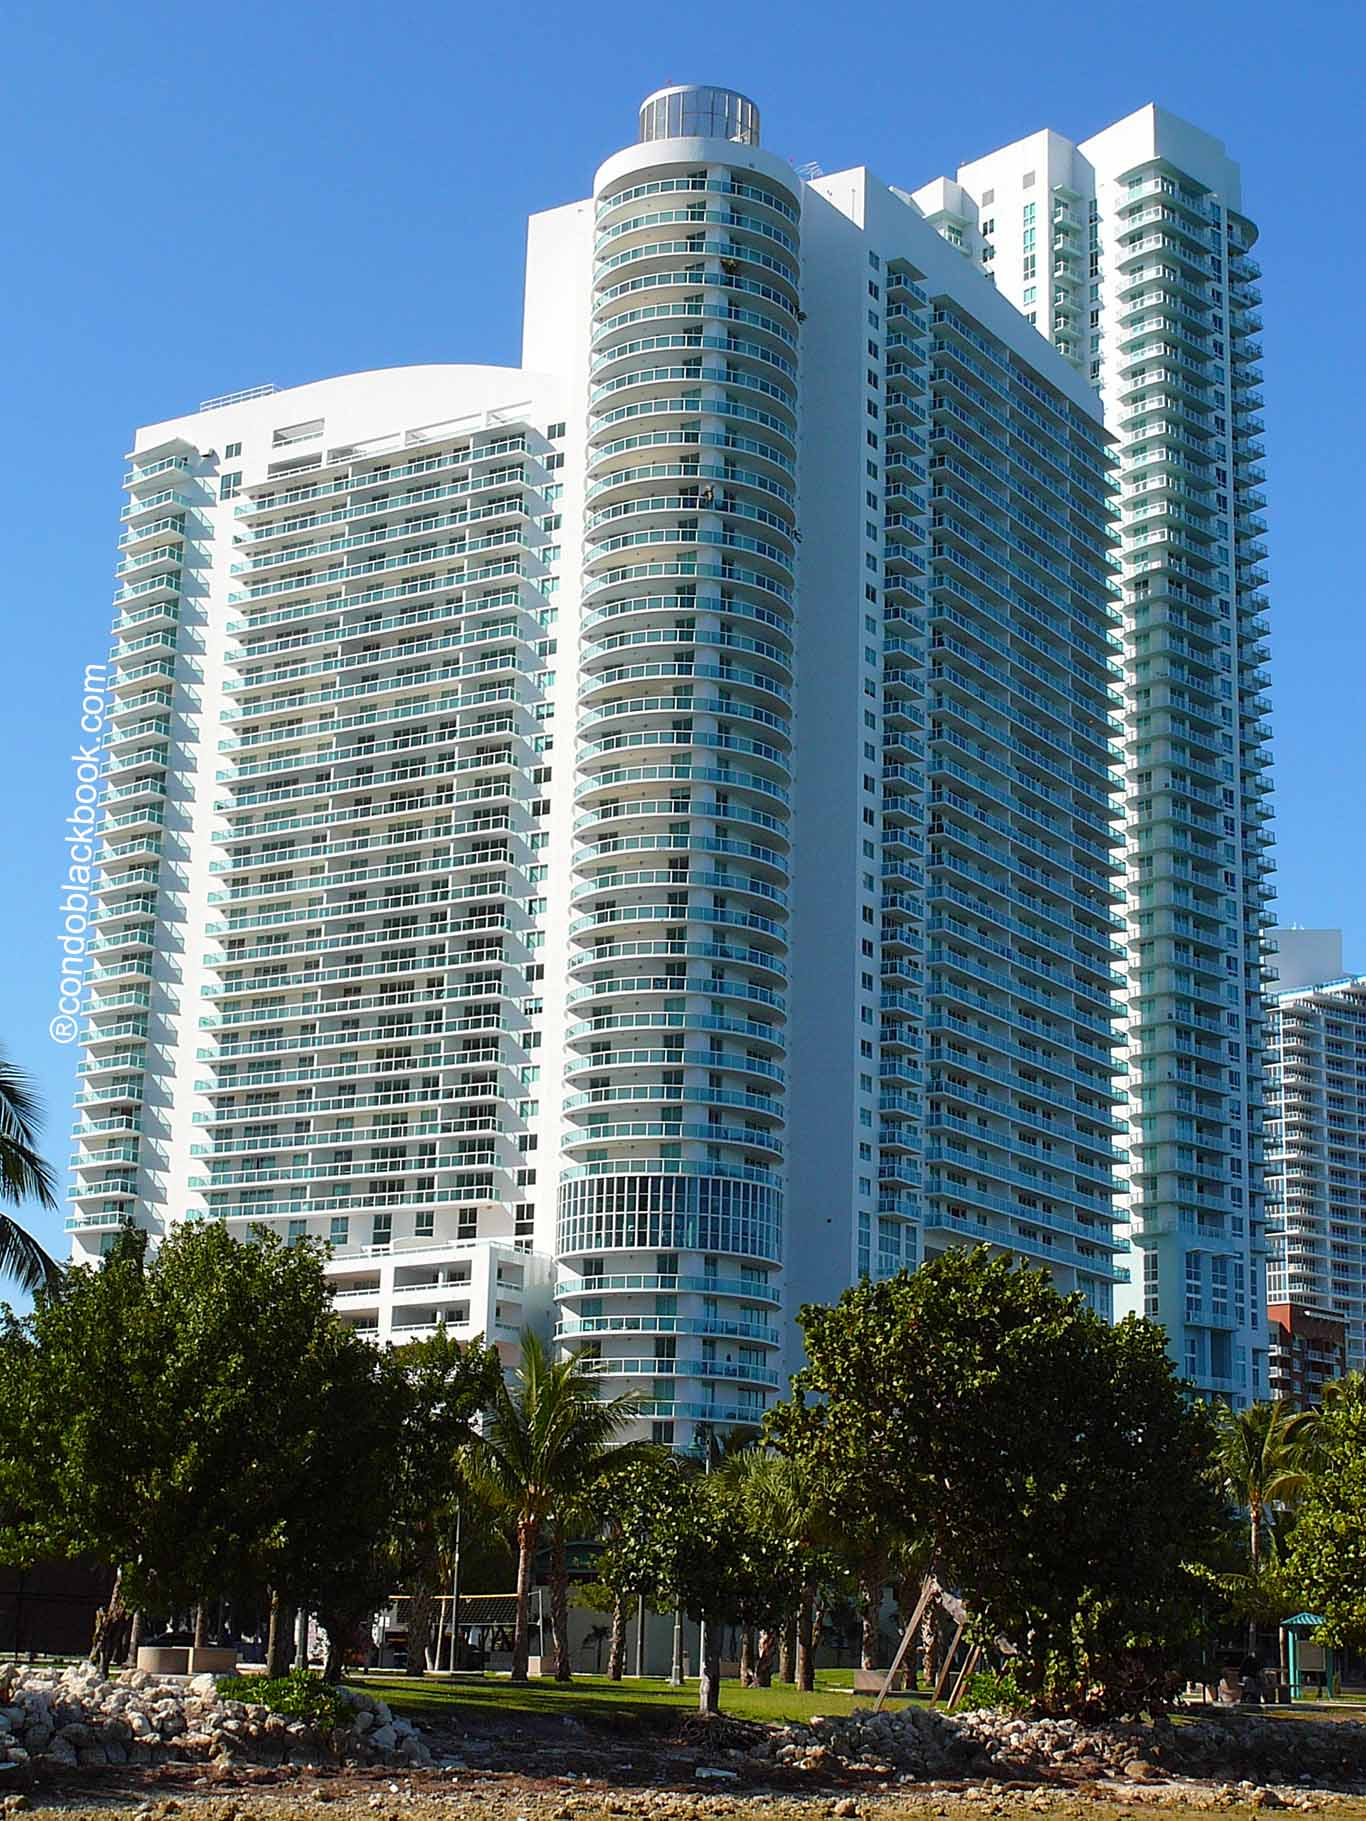 Building in Miami, Downtown Miami, 1800 Club